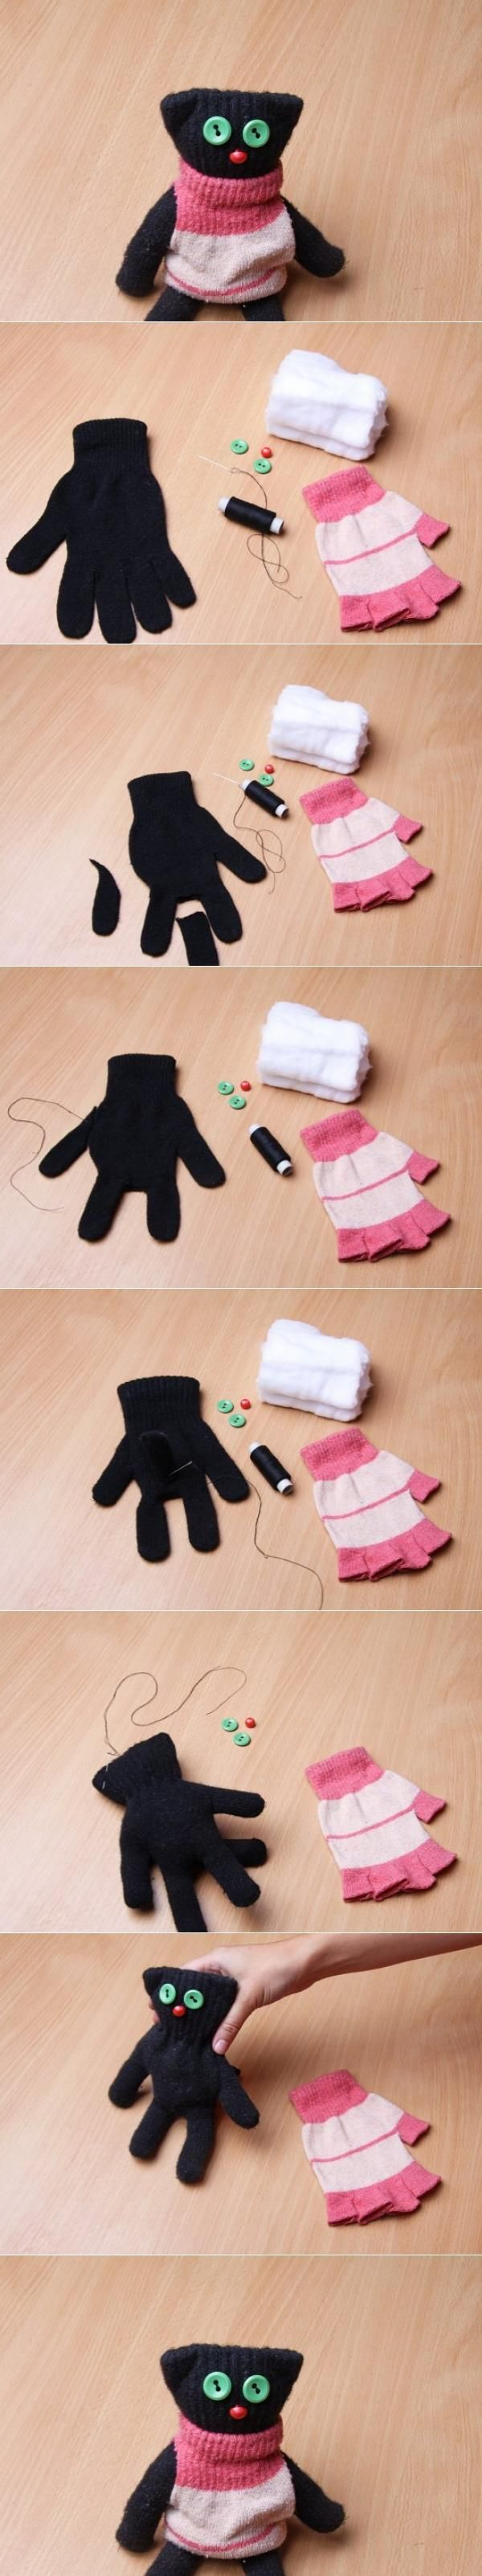 DIY Gloves Doll con guantes